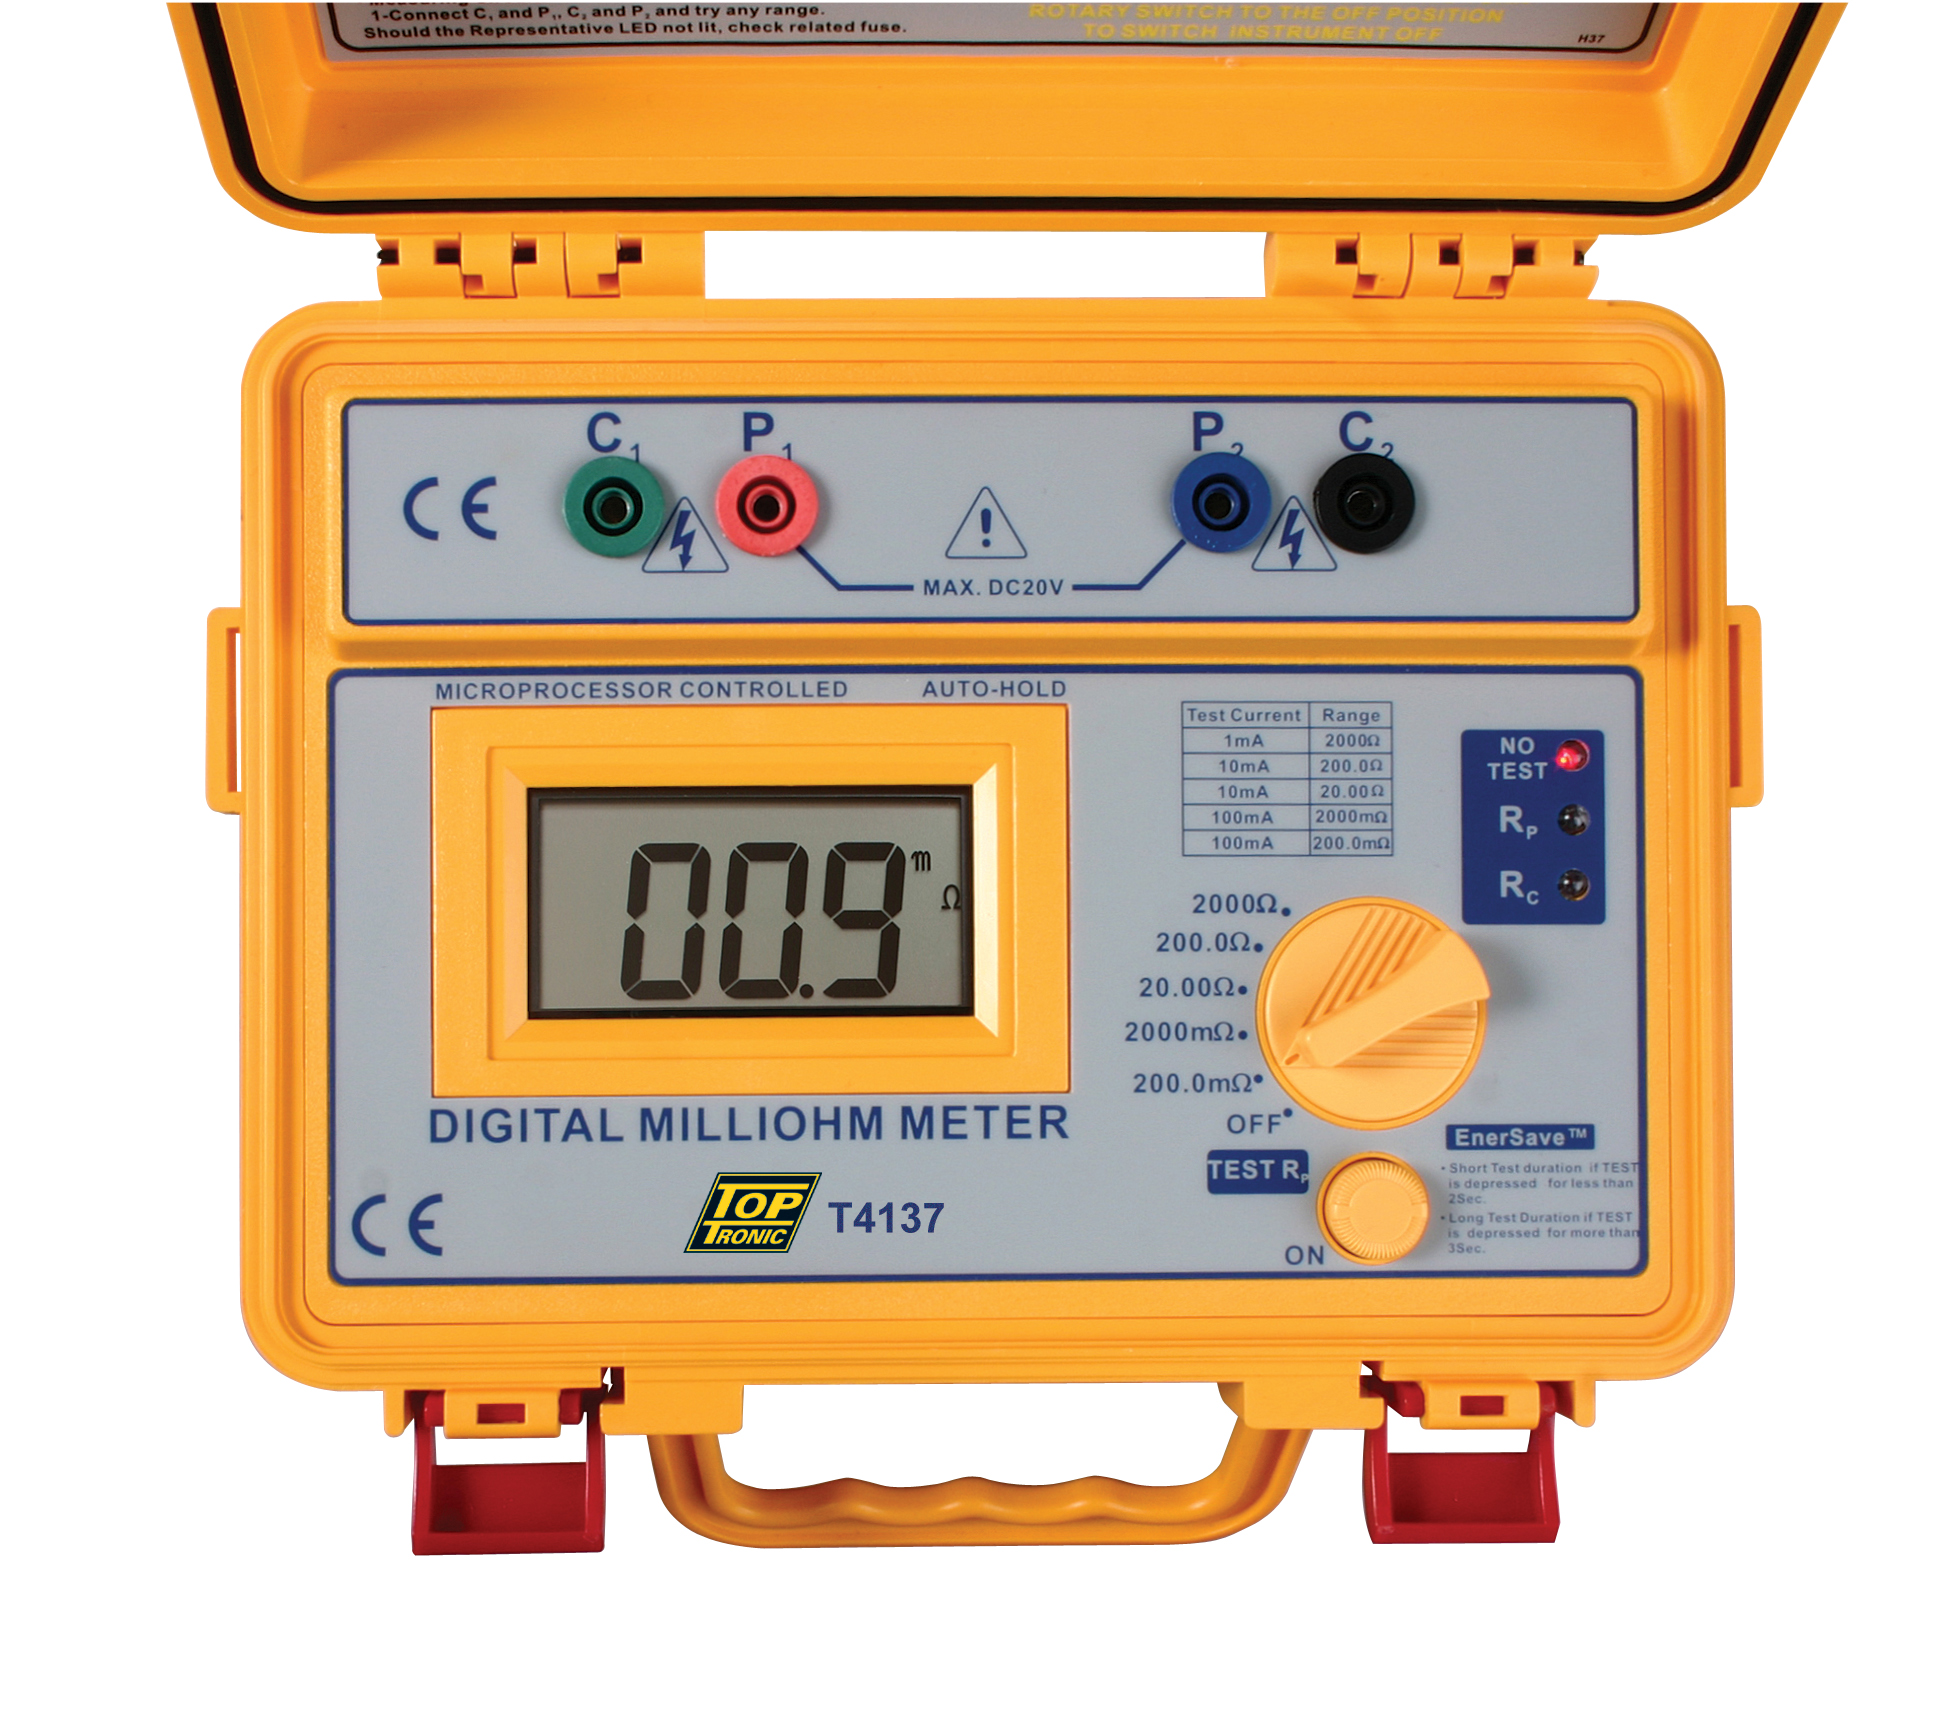 Digital Ohm Meter : T digital milliohm meter toptronic ltd